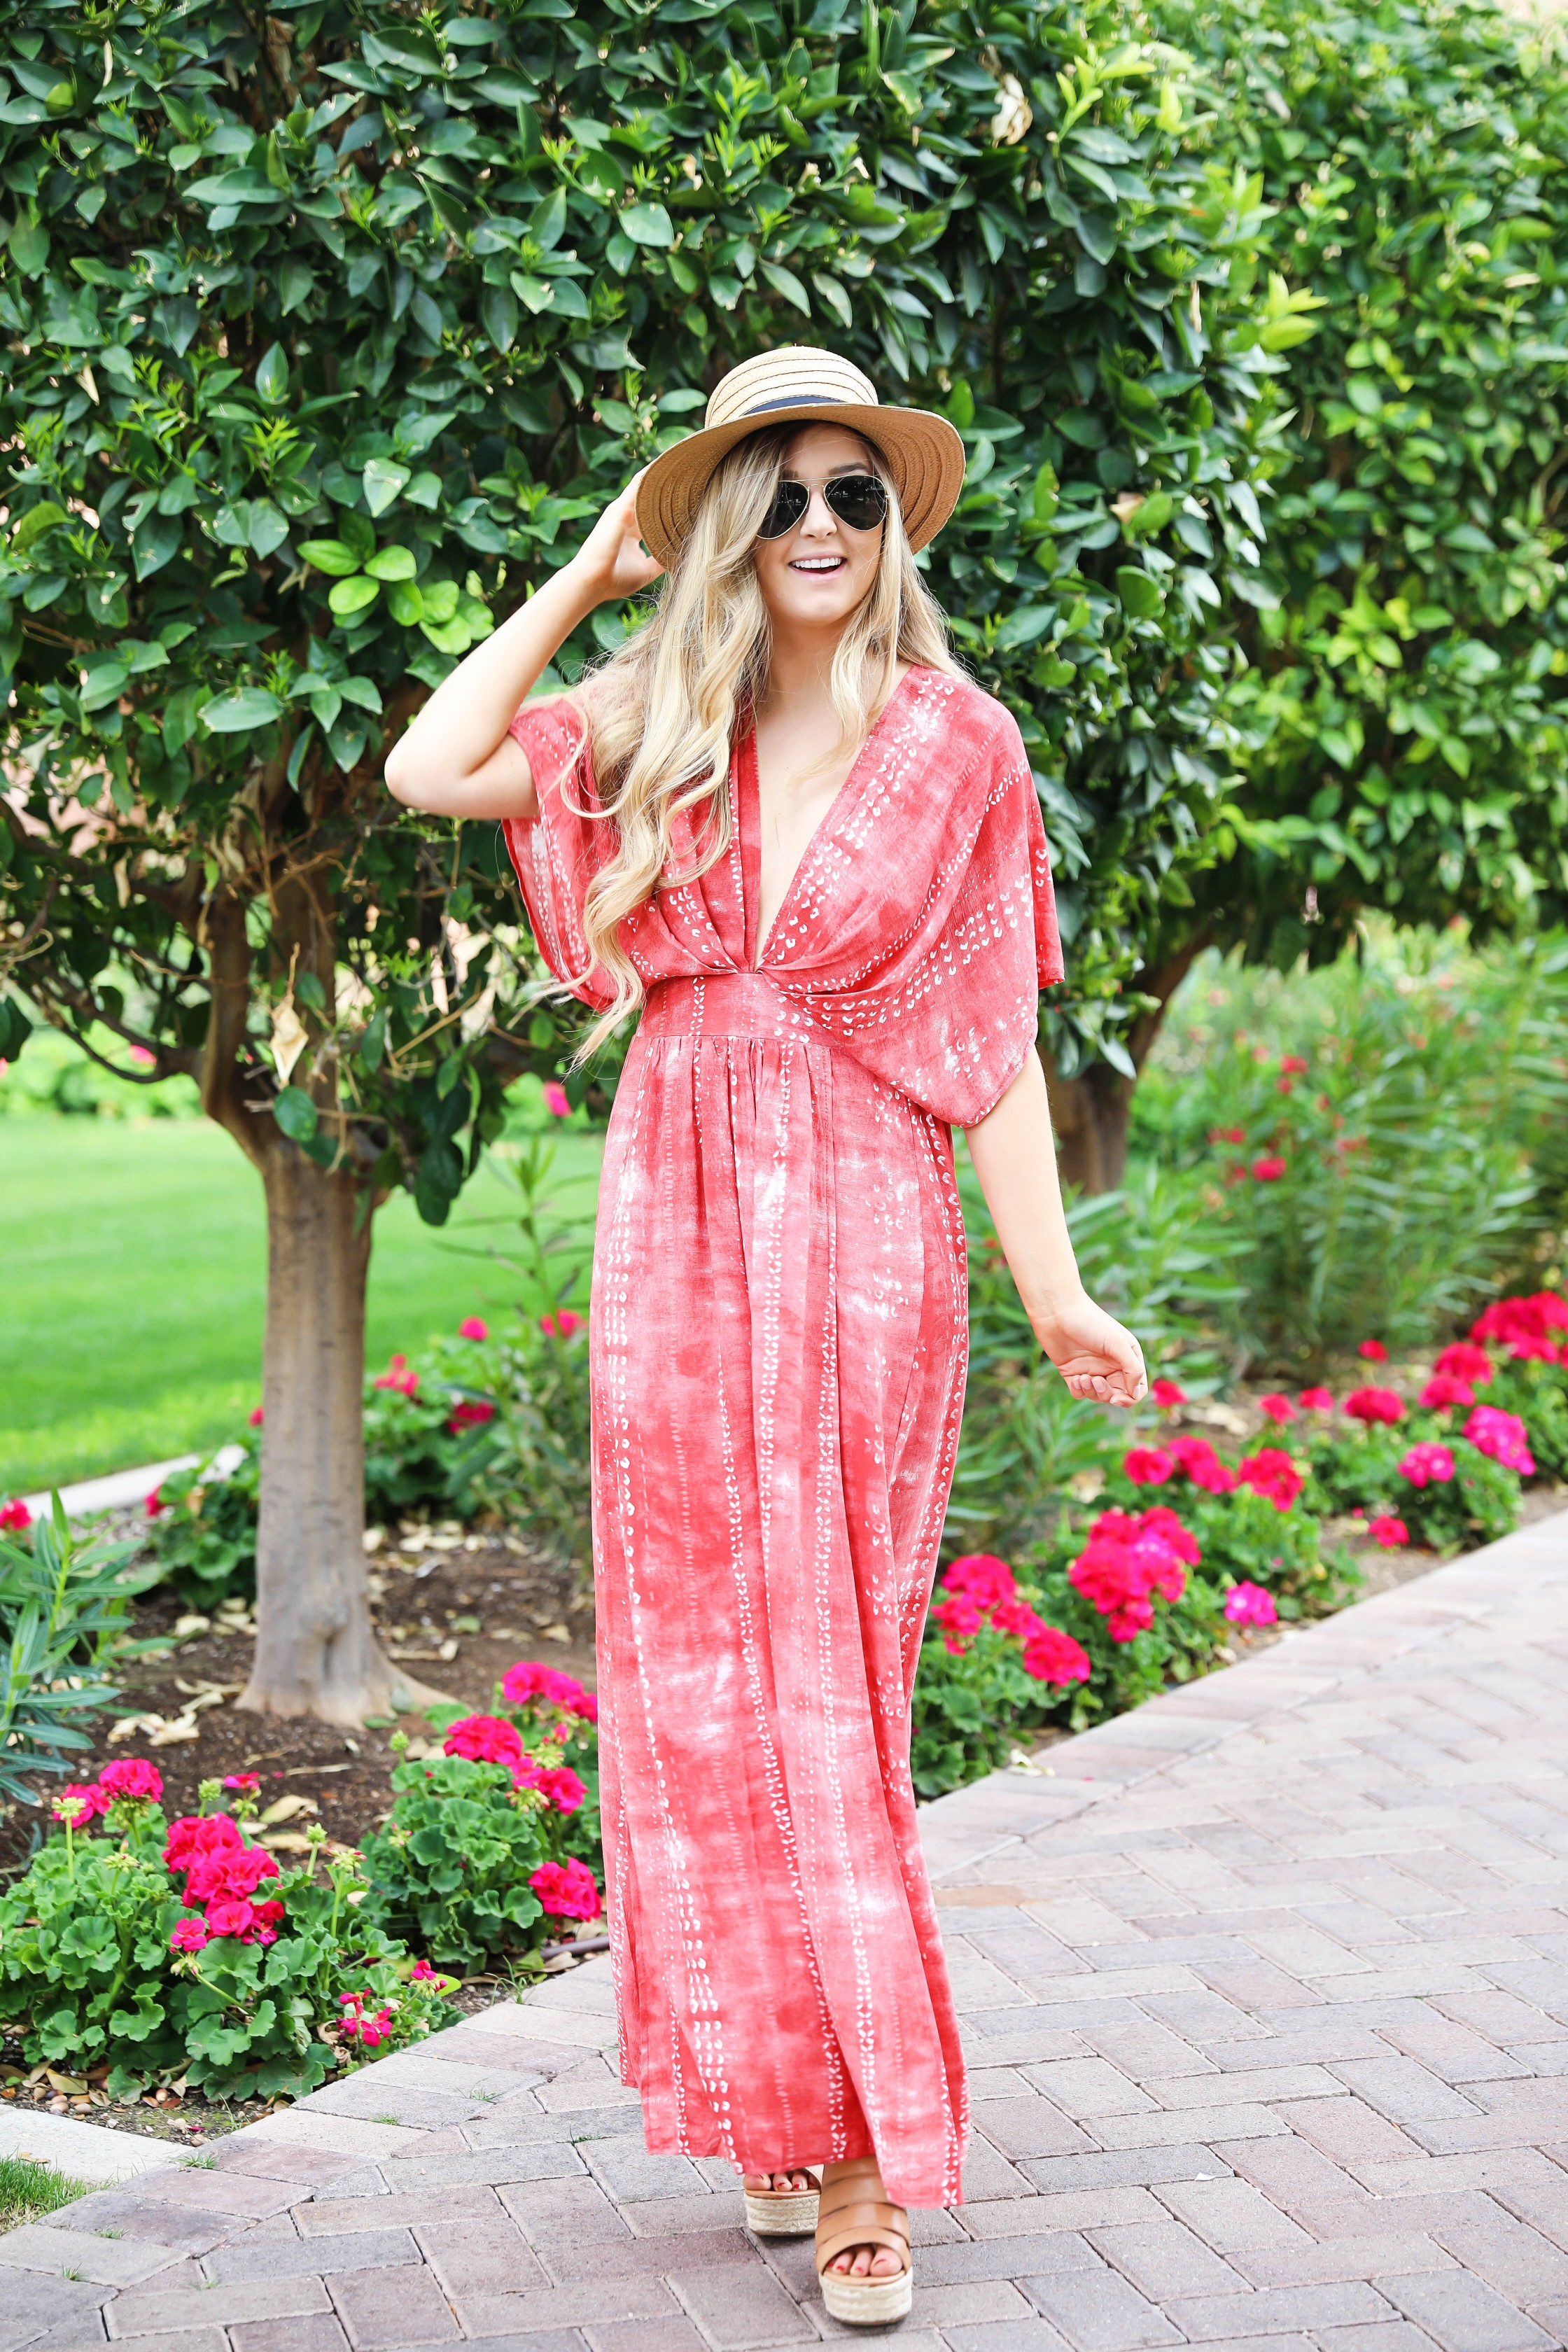 Red tie dye maxi dress from Showpo! Maxi dress with a cute plunging neckline paired with astraw hat and Marc fisher wedges! Details on fashion blog daily dose of charm by lauren lindmark spring break outfit ideas